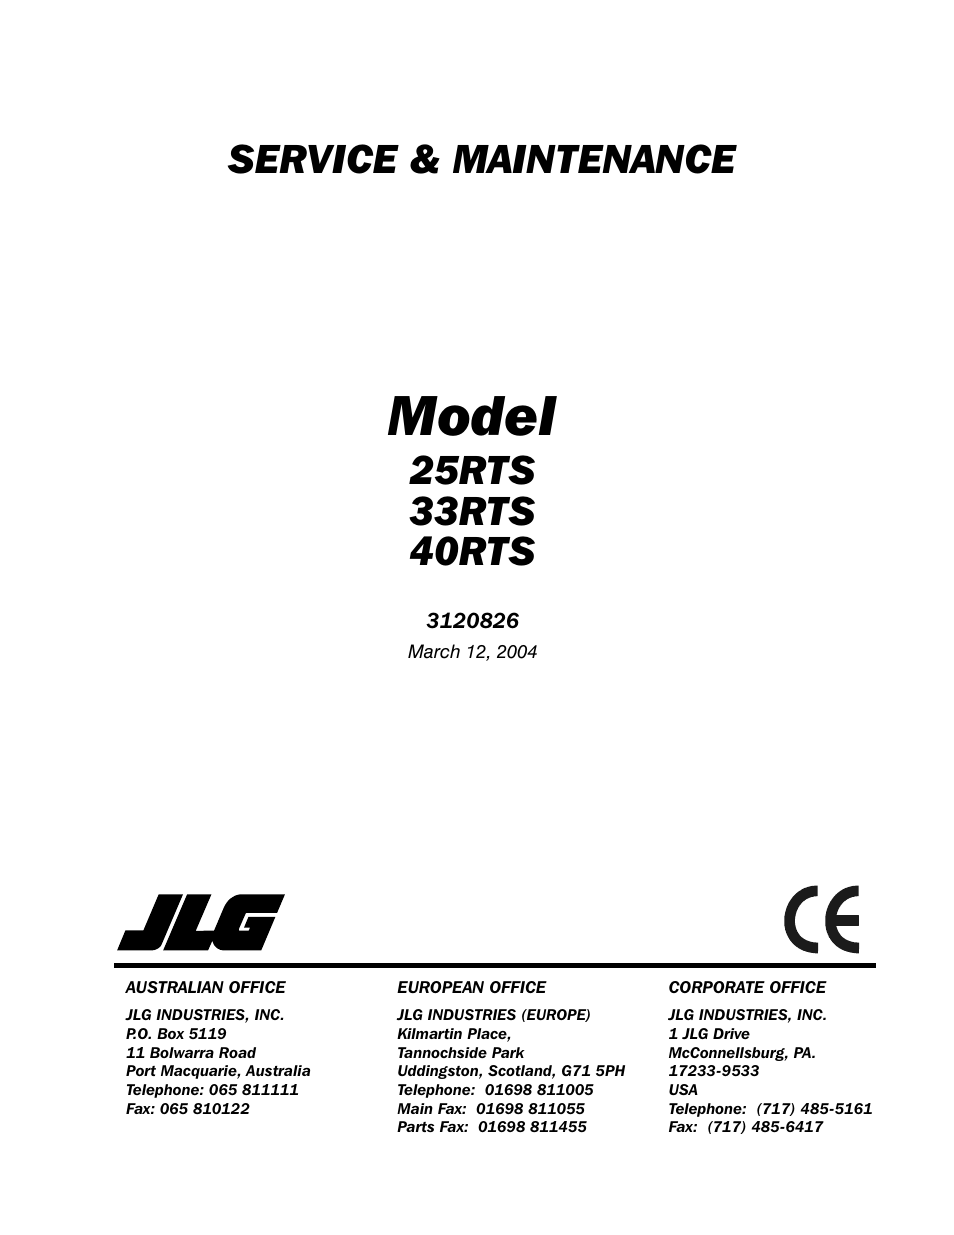 jlg 40rts service manual page1?resize\\\=665%2C861 skytrak 5028 wiring diagram sullair wiring diagram, jlg wiring skytrak 6036 wiring diagram at bayanpartner.co